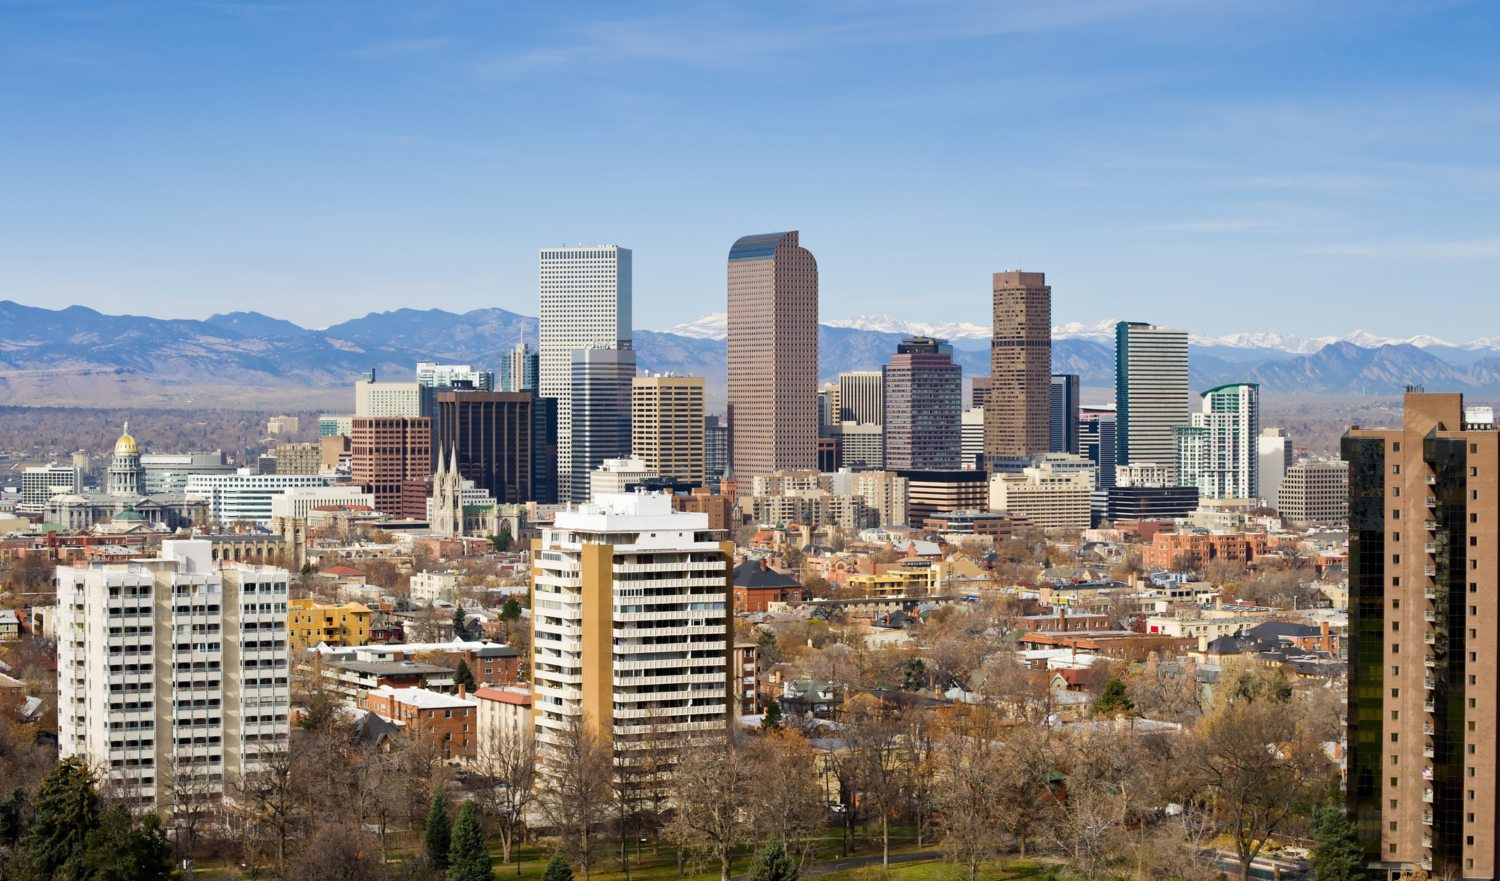 View of Denver Colorado Skyline.  Looking at city with mountains in background.  Converted from 14-bit Raw file.  sRGB color space.